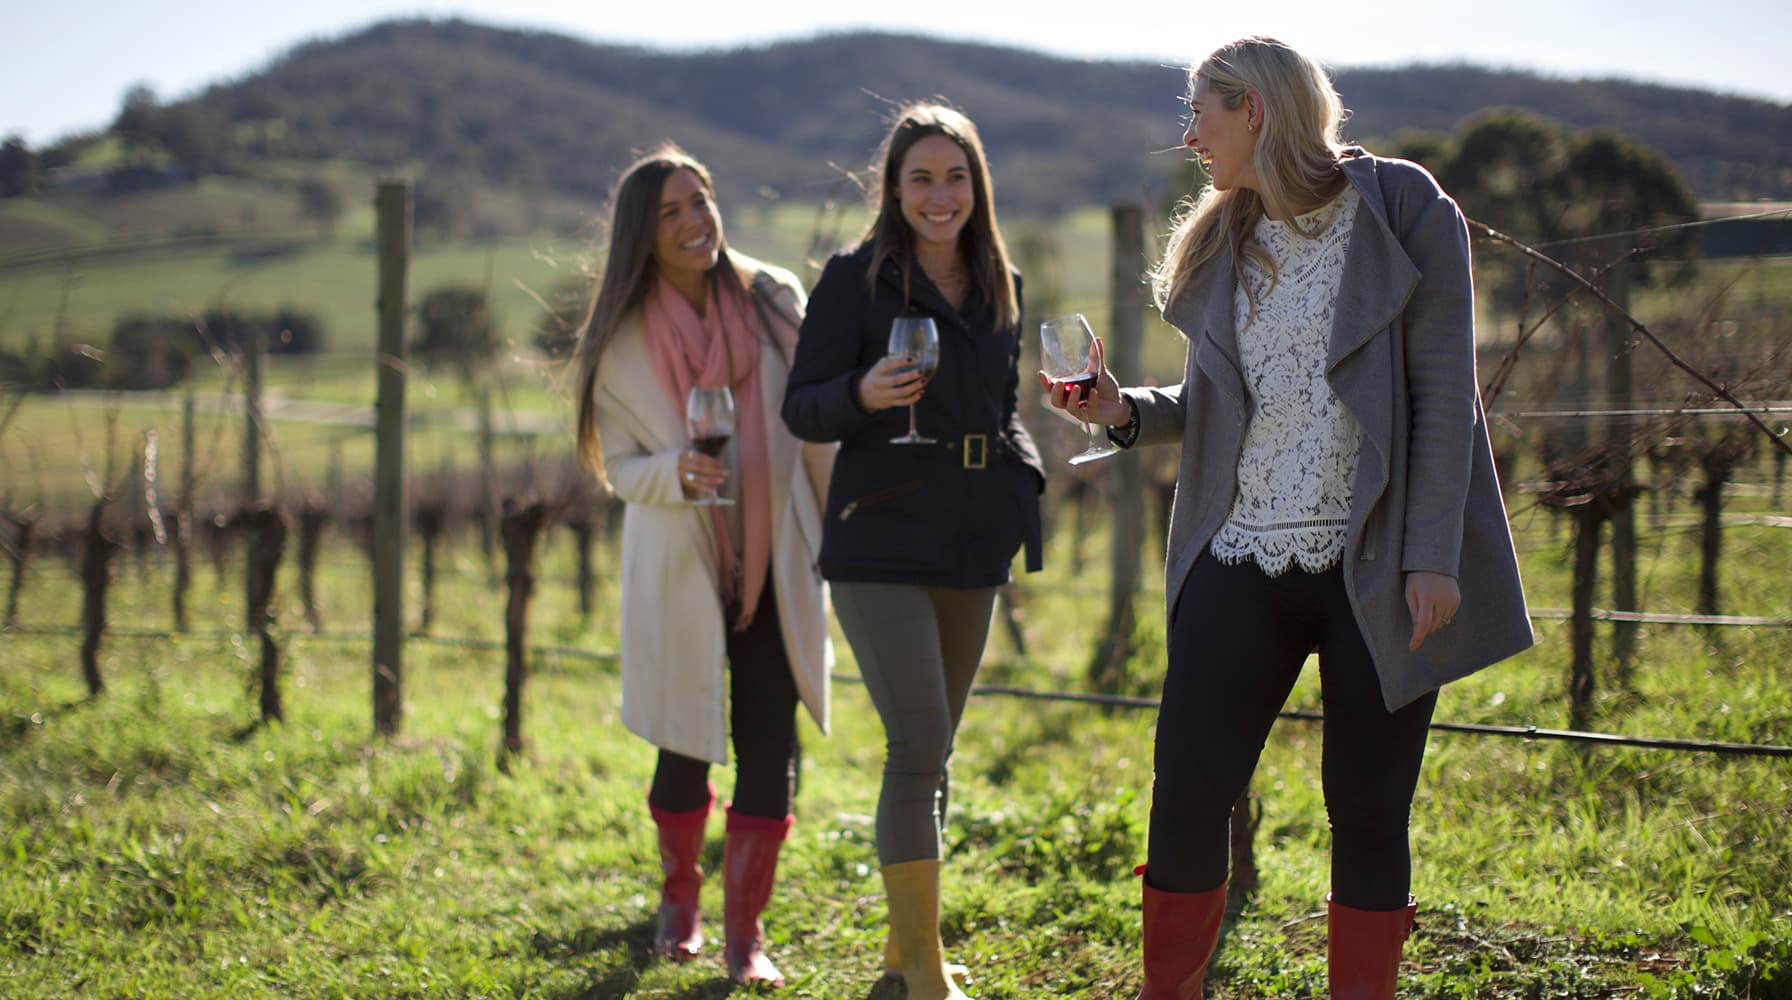 Group of women doing a vineyard tour at De Bortoli Wines Yarra Valley Estate